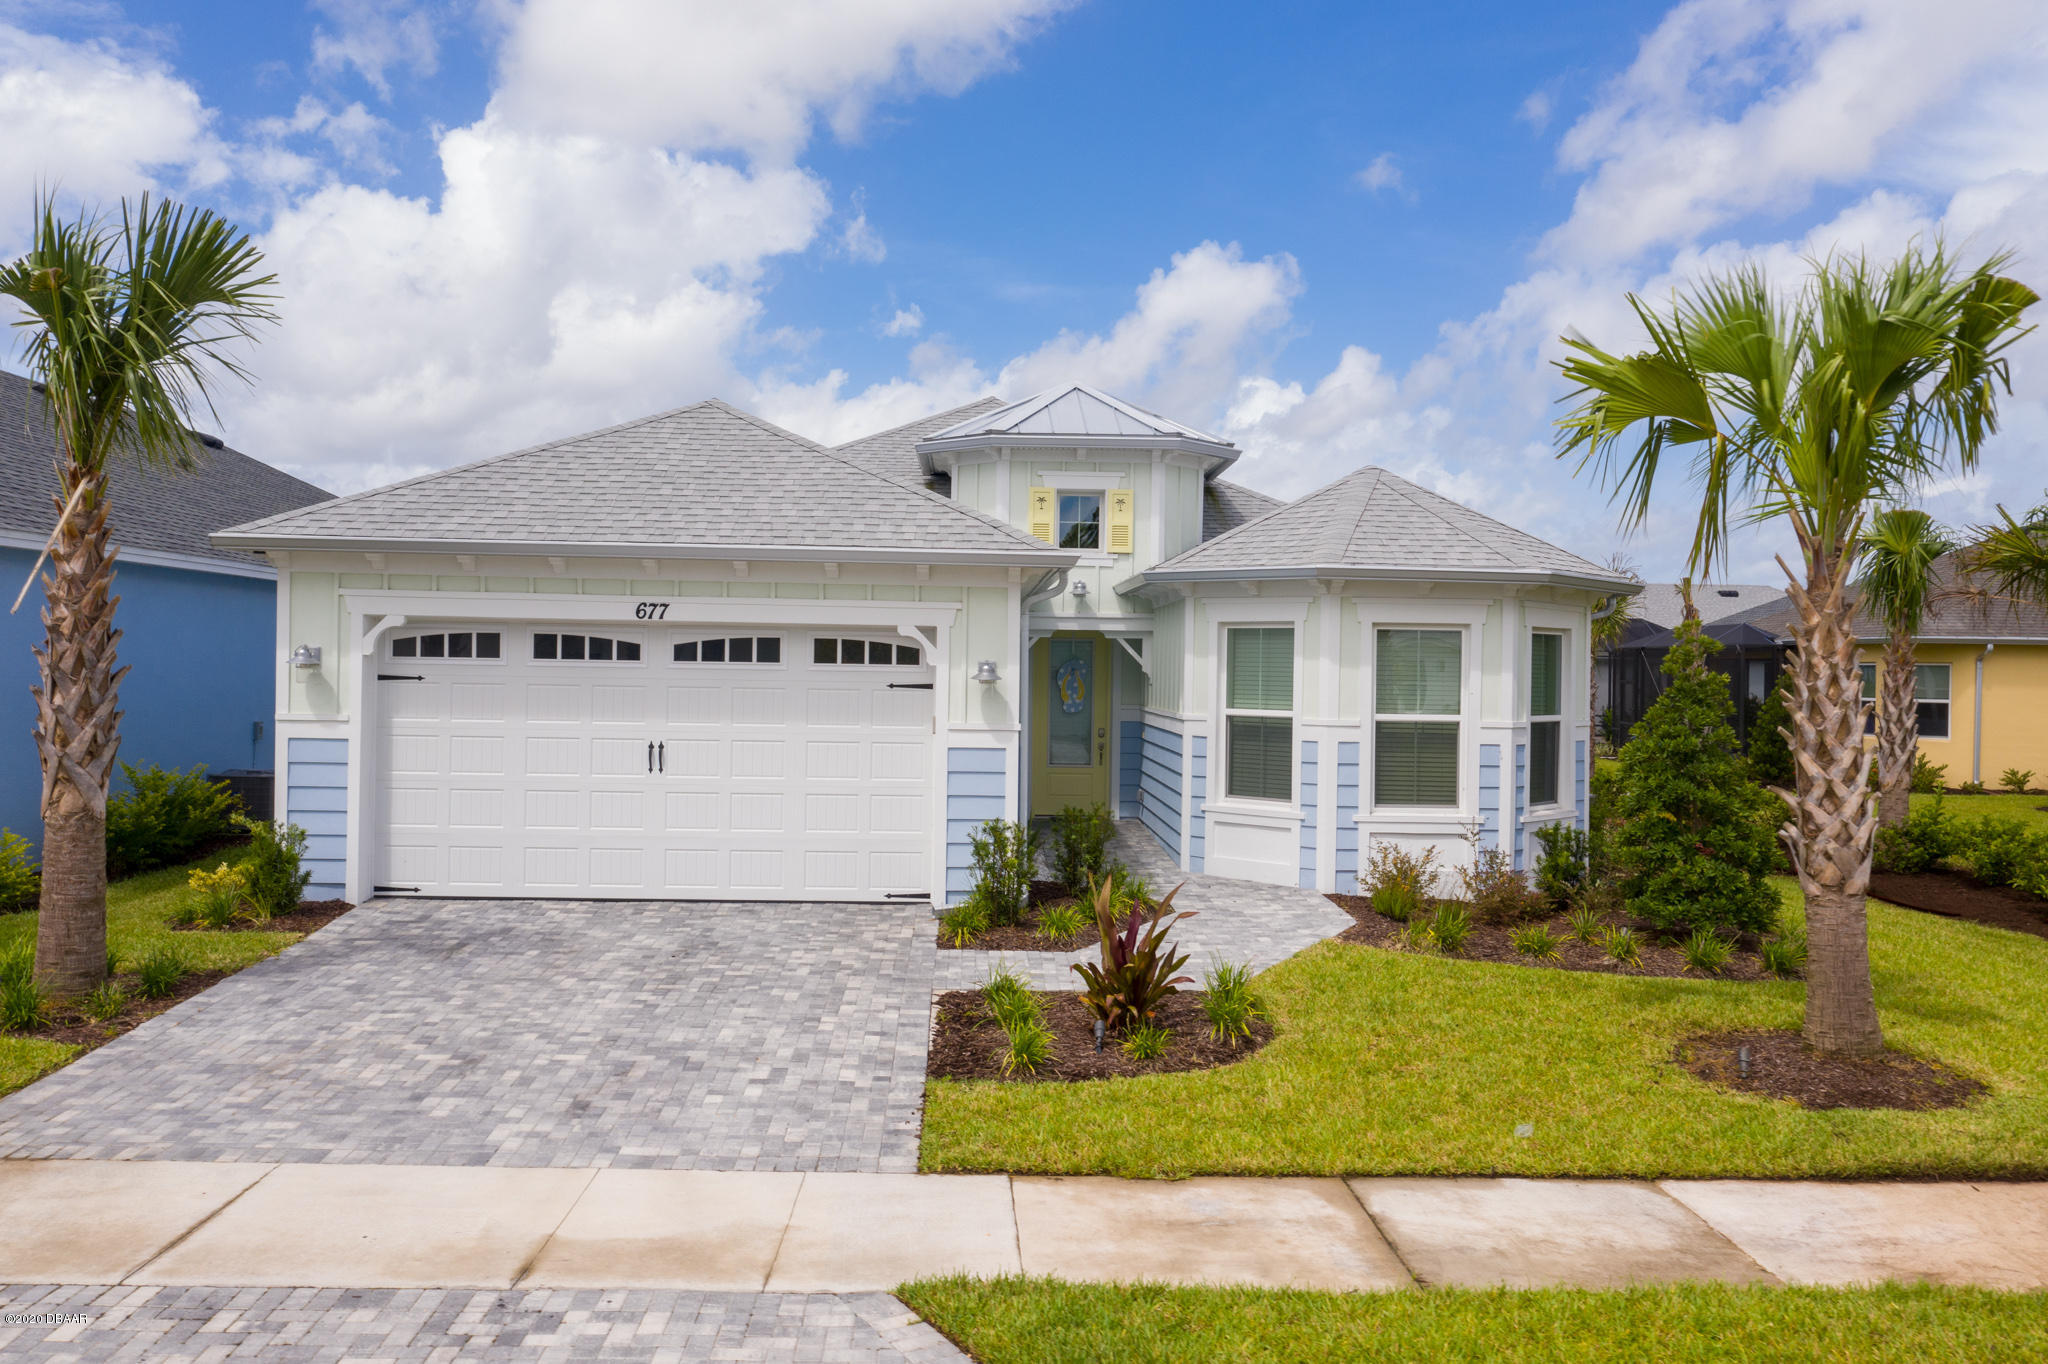 Photo of 677 Landshark Boulevard, Daytona Beach, FL 32124